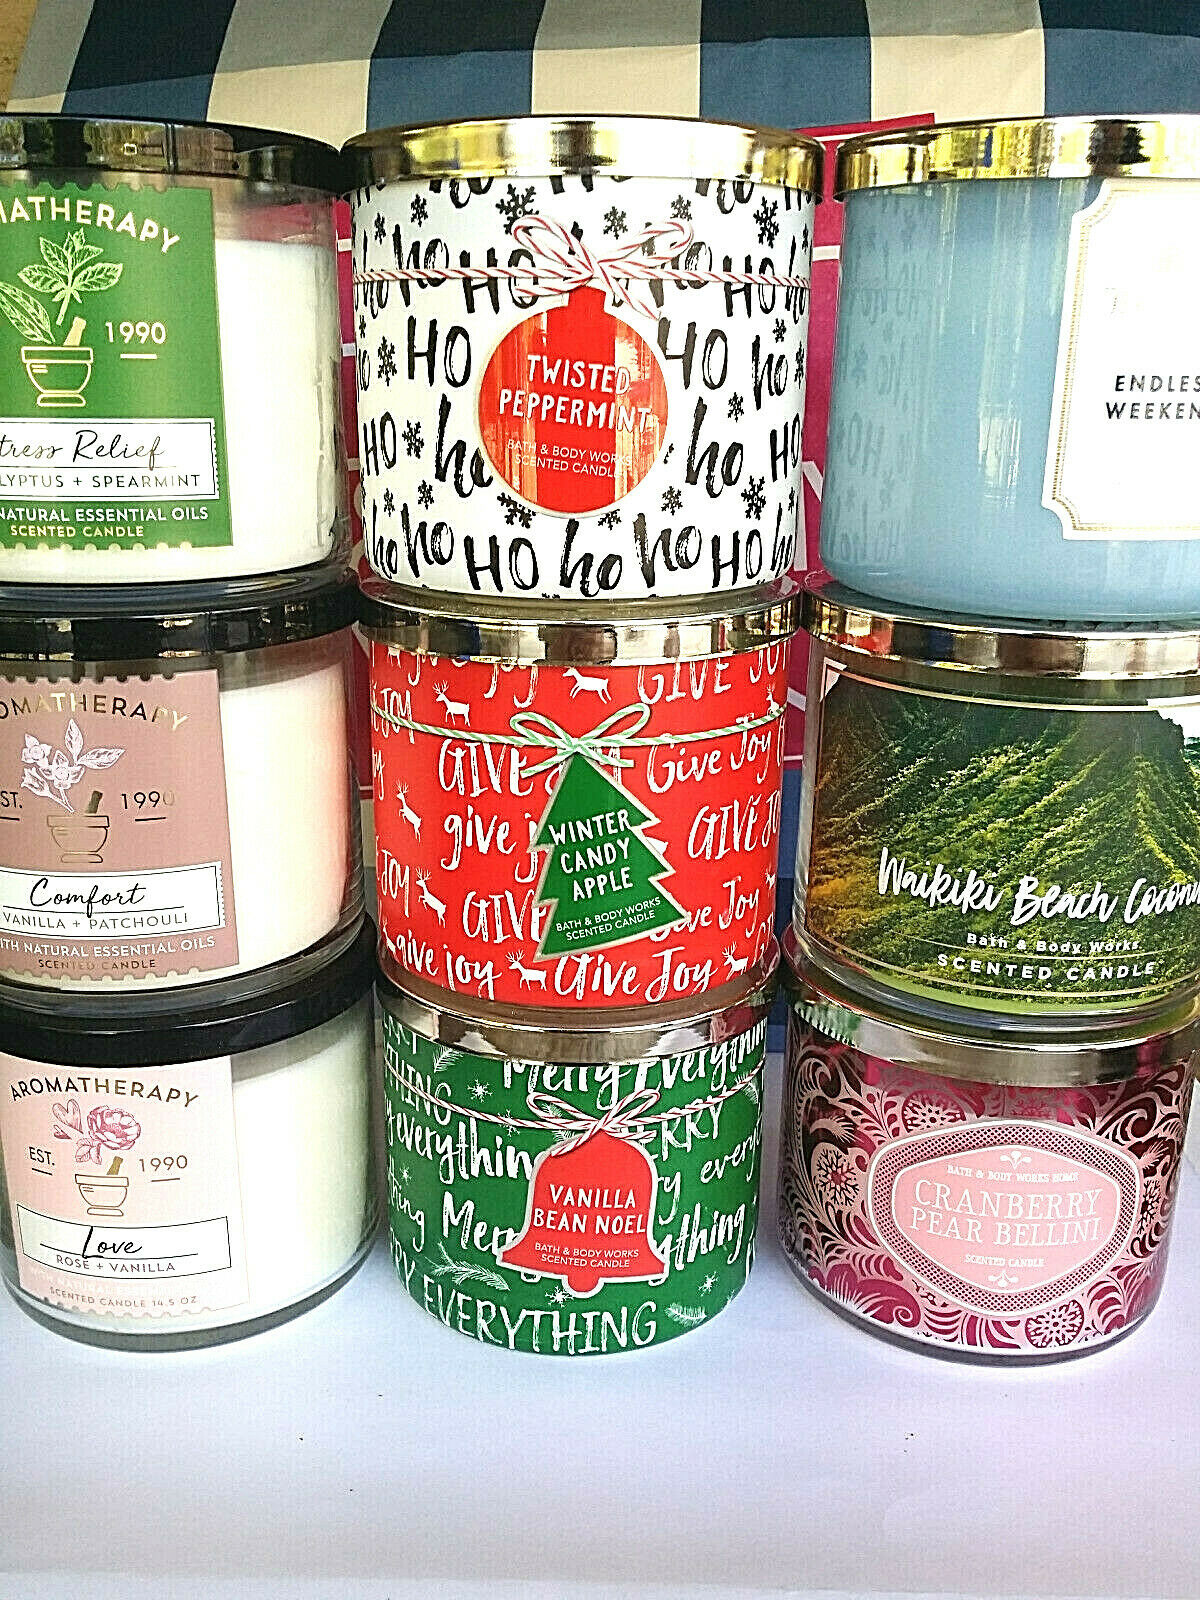 411 g 14.5 oz Bath /& Body Works Champagne Toast Scented 3-Wick Holiday Candle